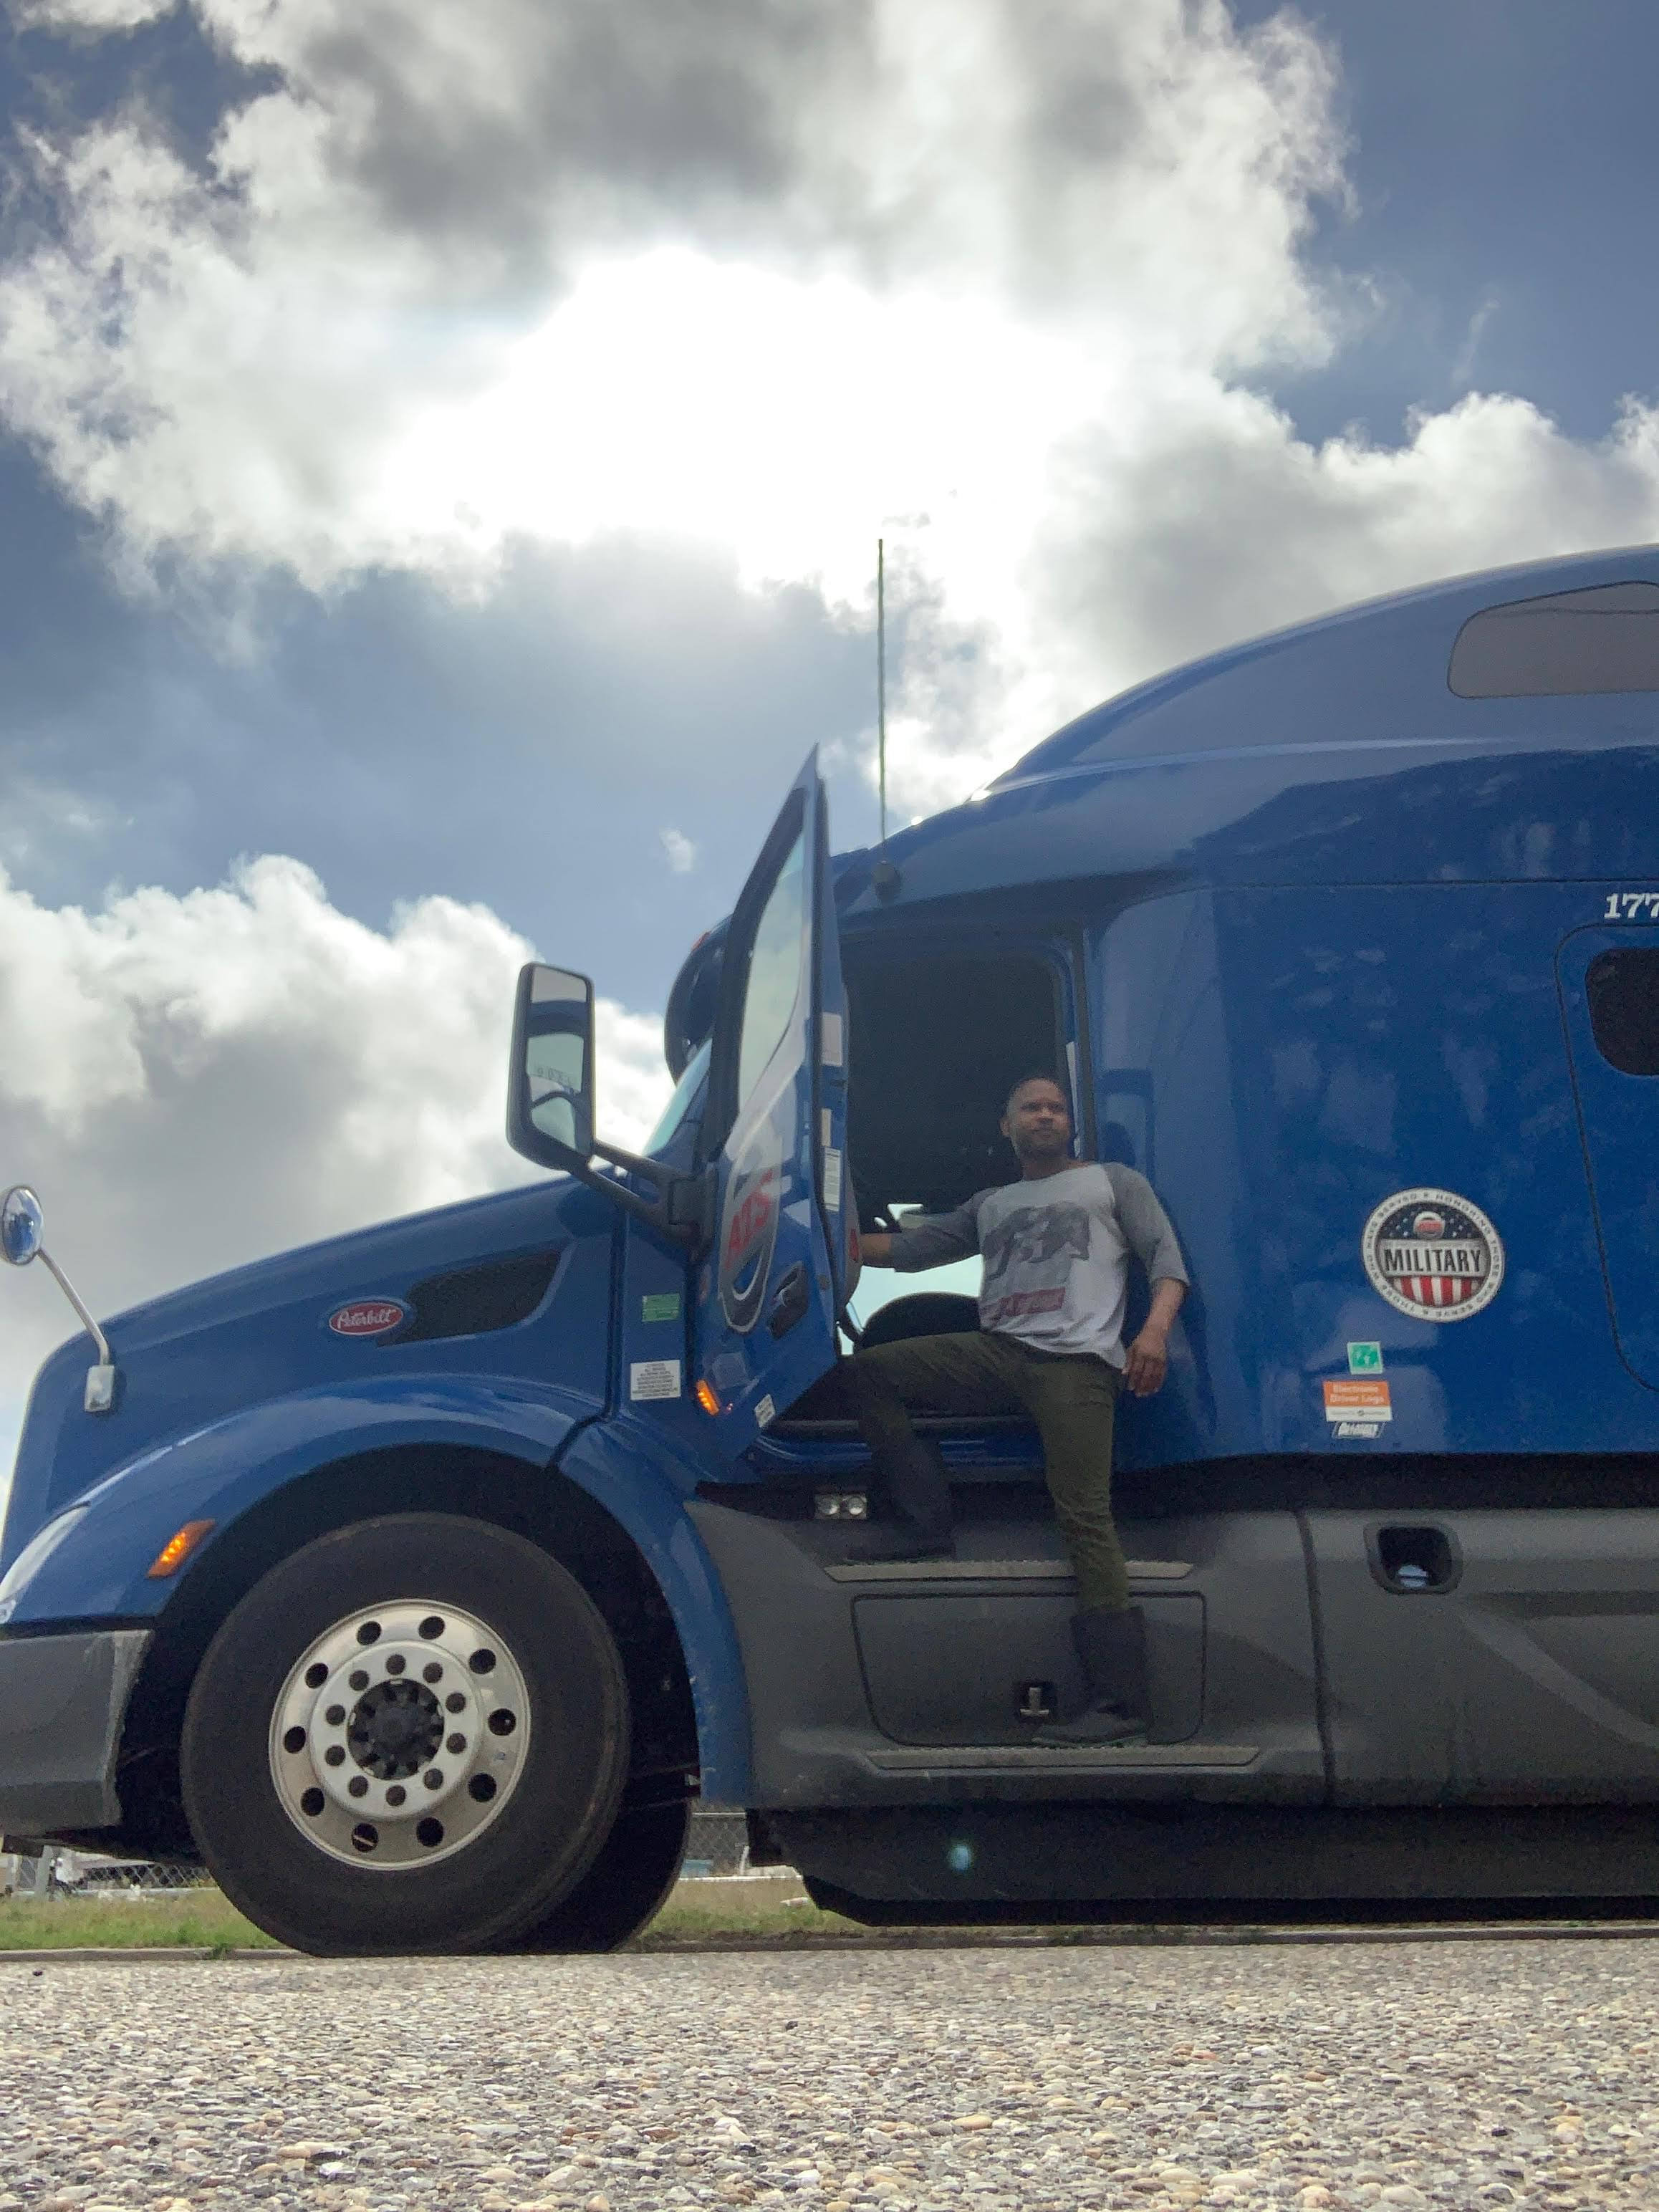 Trucking industry key to keeping economy afloat during COVID-19 pandemic [VIDEO]